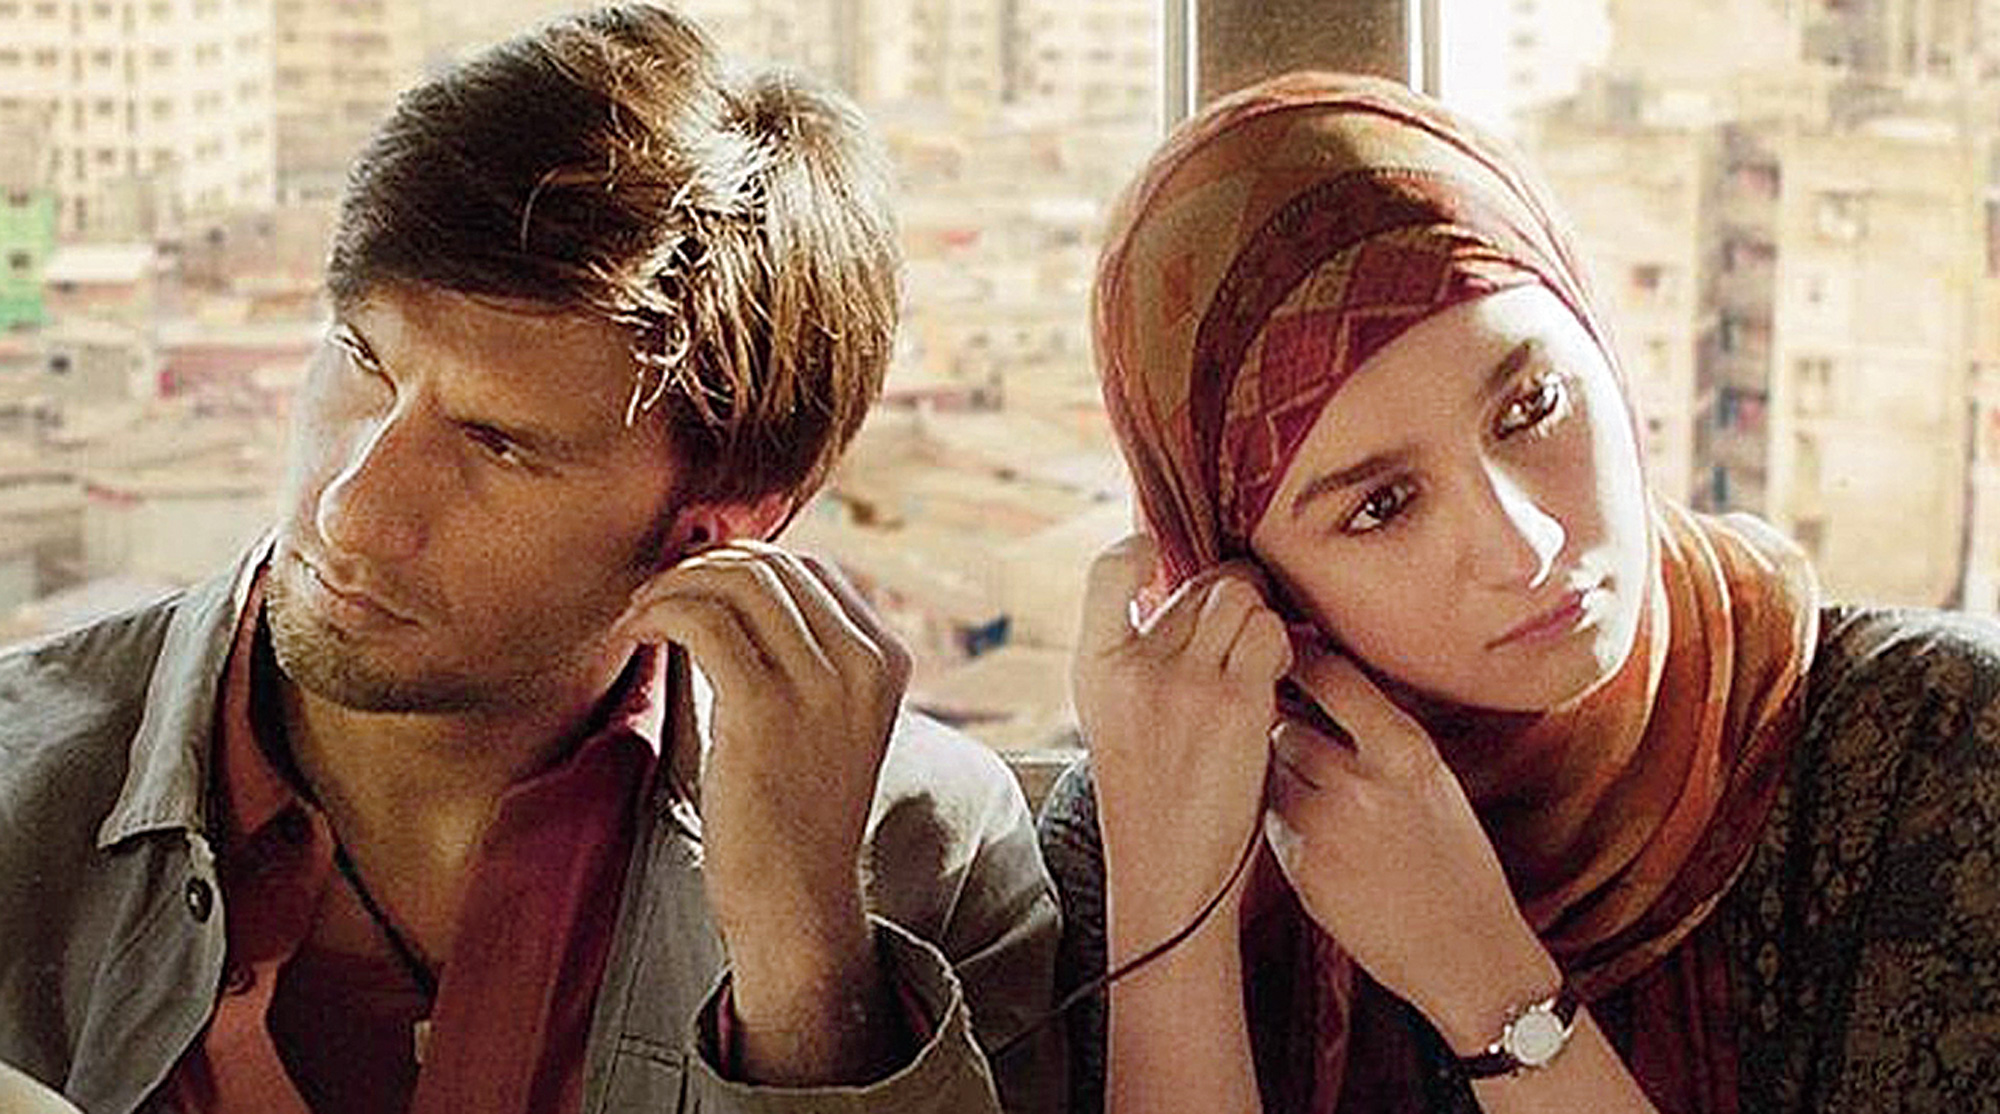 Gully Boy is a rebel anthem that rarely misses a beat